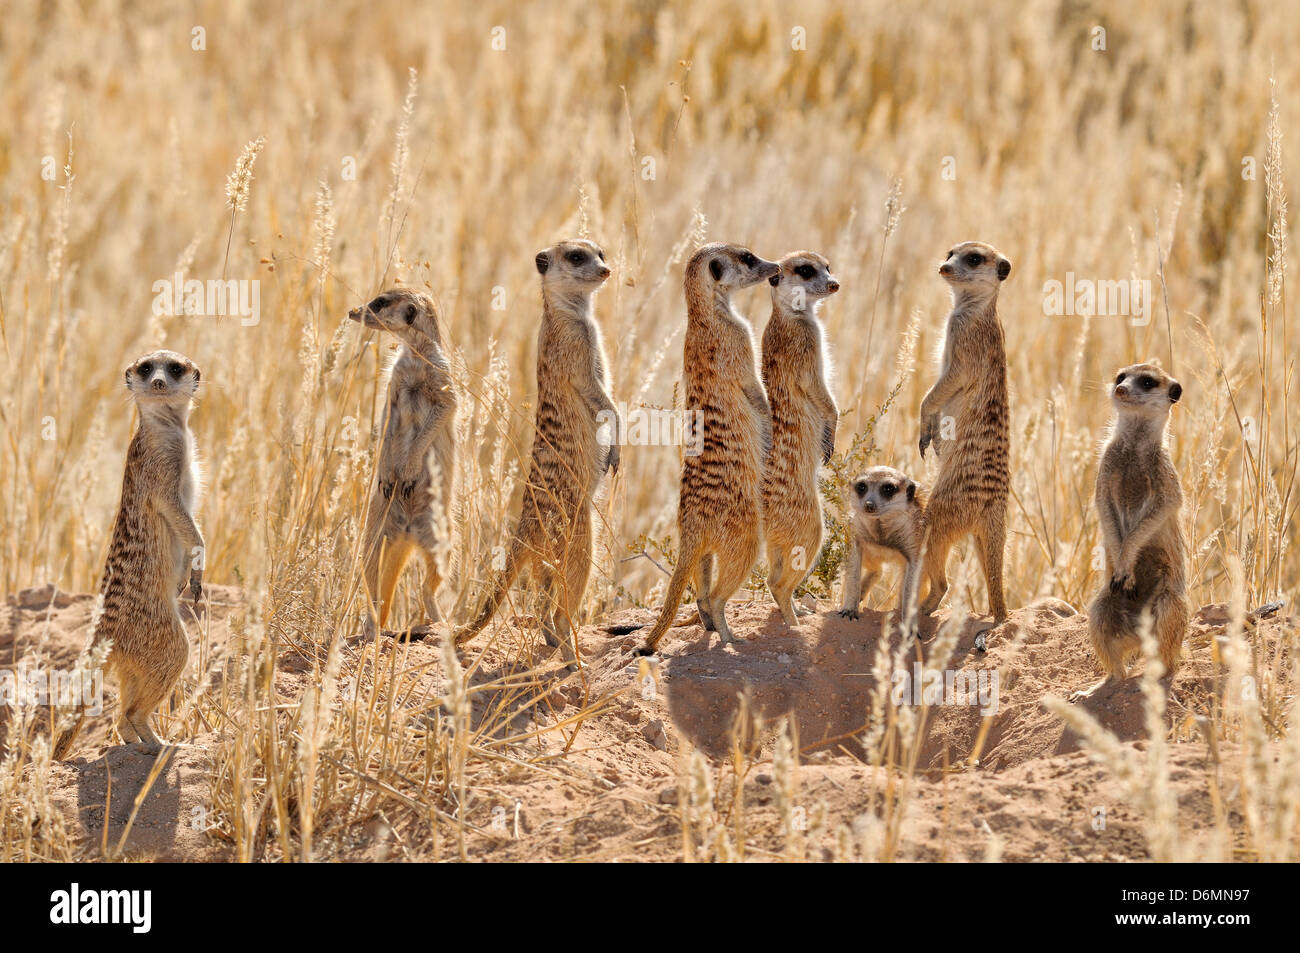 Meerkat Suricata suricatta Photographed in Kgalagadi National Park, South Africa - Stock Image